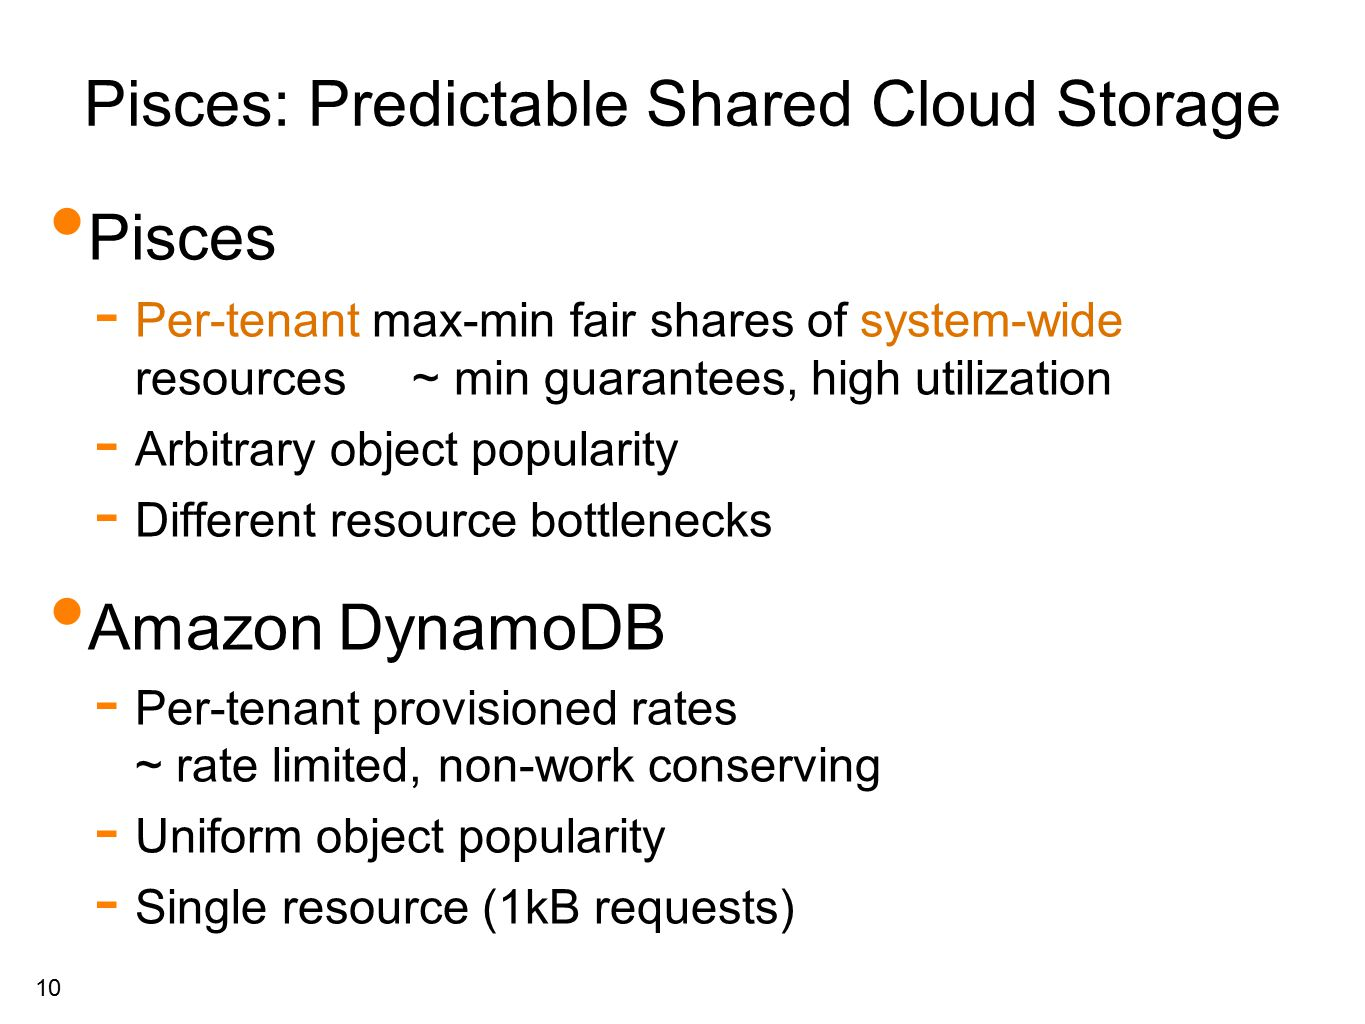 10 Pisces: Predictable Shared Cloud Storage Pisces - Per-tenant max-min fair shares of system-wide resources ~ min guarantees, high utilization - Arbitrary object popularity - Different resource bottlenecks Amazon DynamoDB - Per-tenant provisioned rates ~ rate limited, non-work conserving - Uniform object popularity - Single resource (1kB requests)